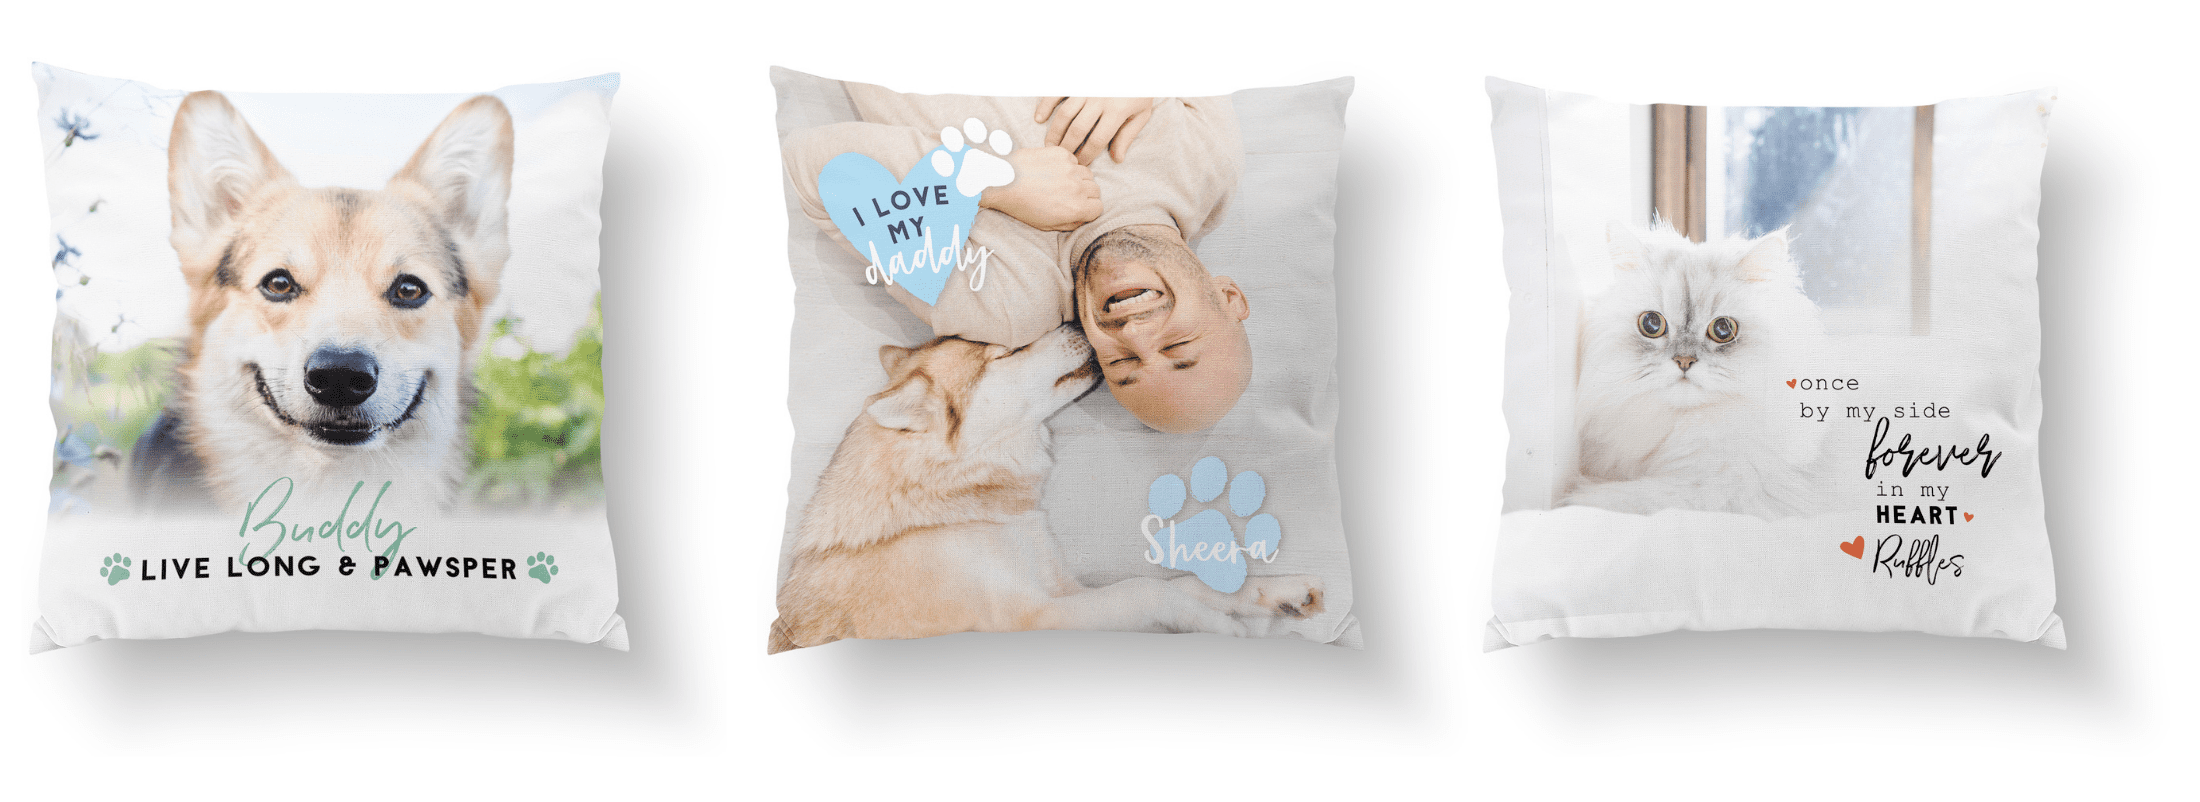 custom photo pillows personalized gift